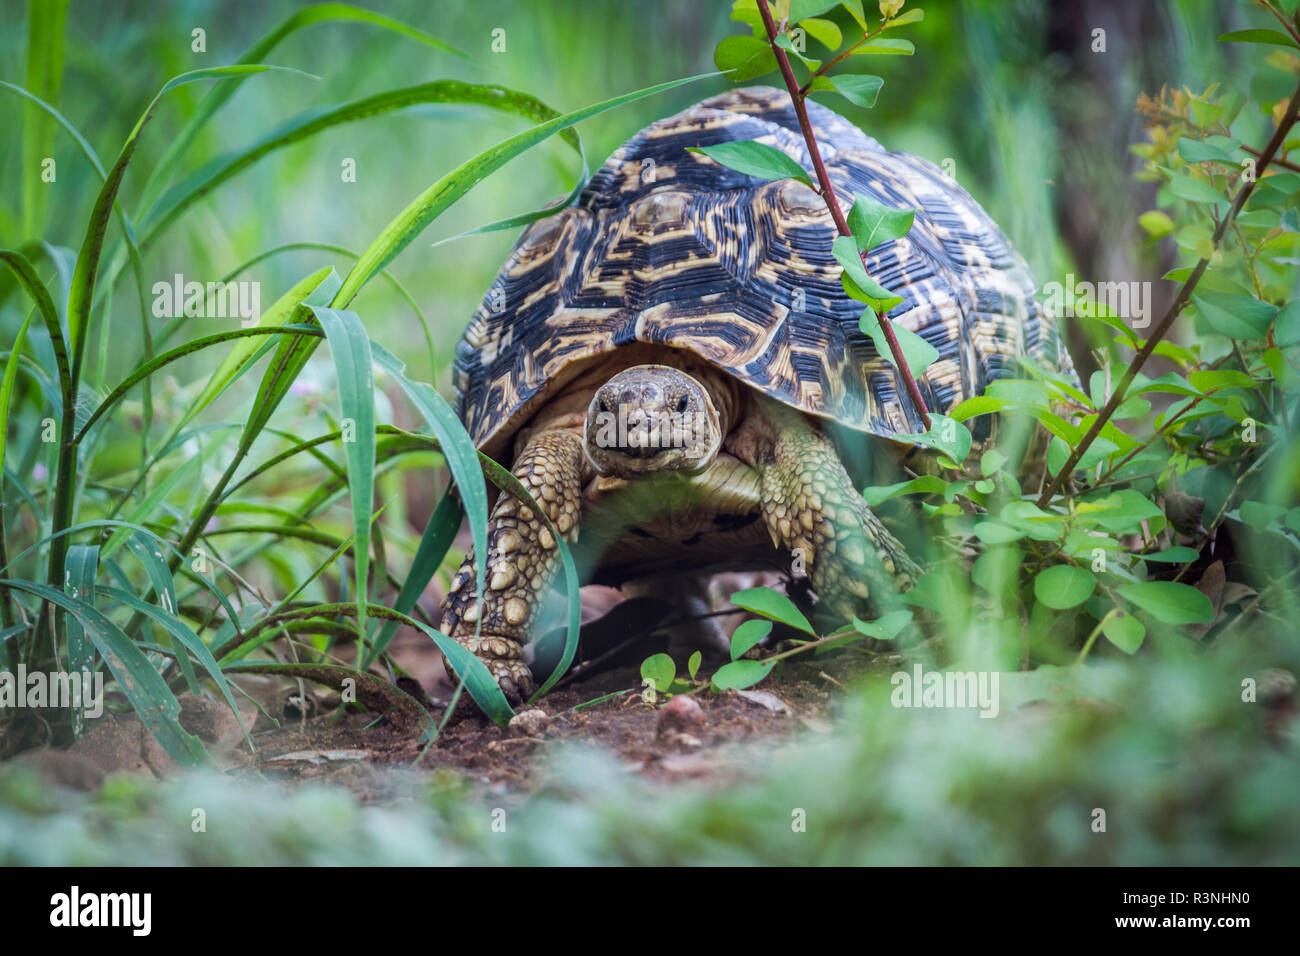 Leopard tortoise (Stigmochelys pardalis) in Kruger National park, South Africa. - Stock Image